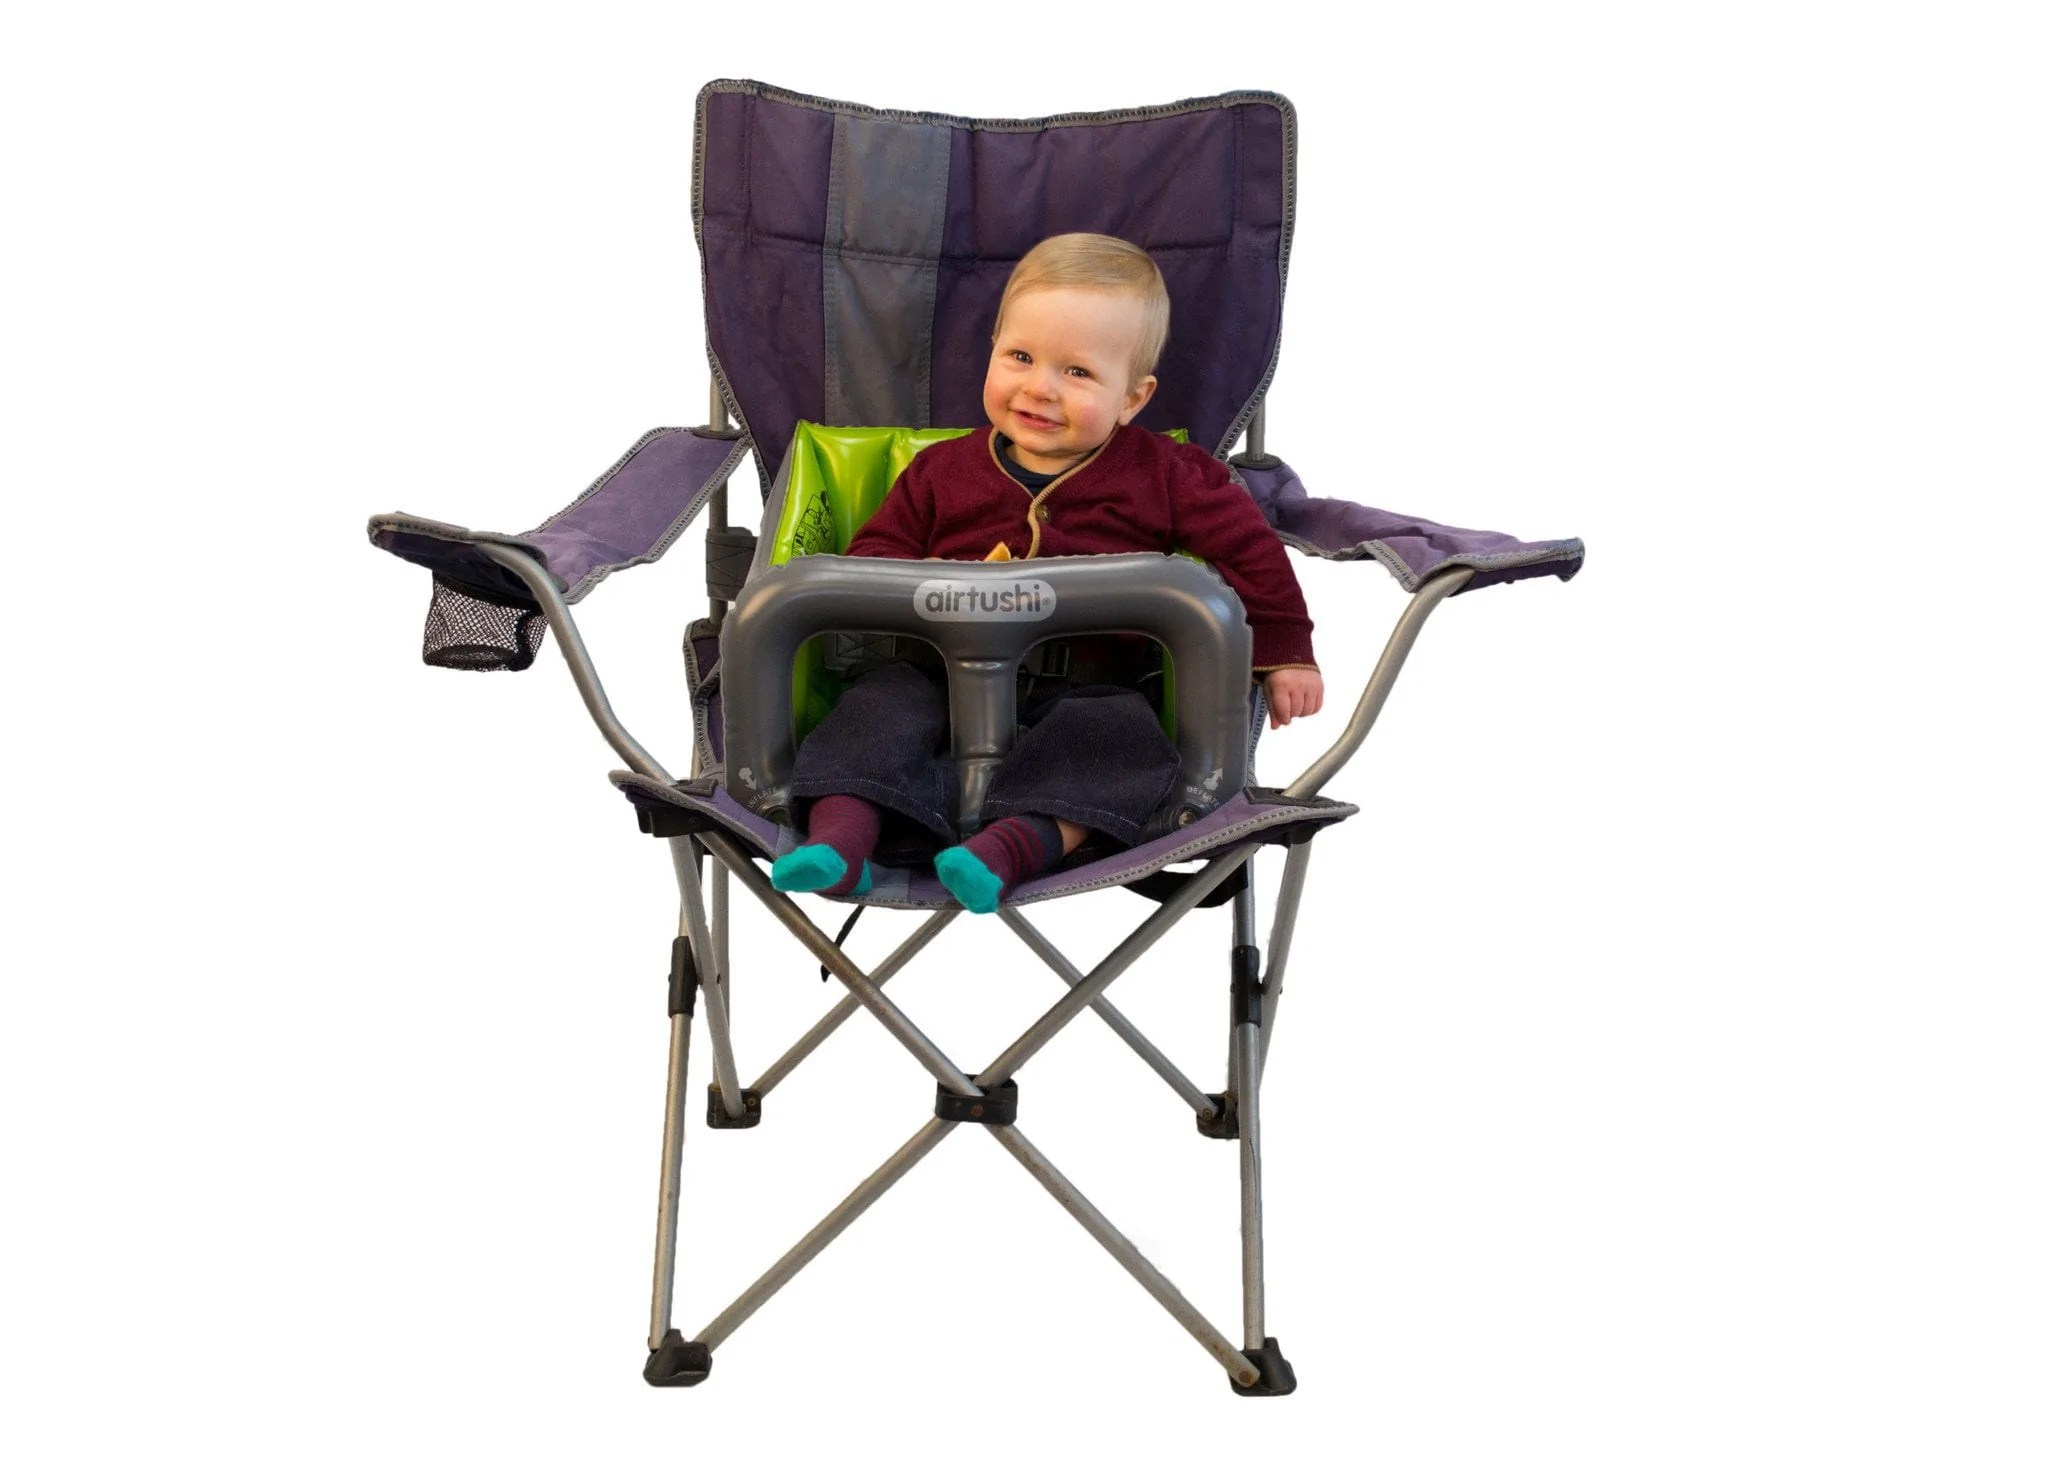 cloth portable high chair adirondack sale airtushi fully inflatable safe travel  home2yard